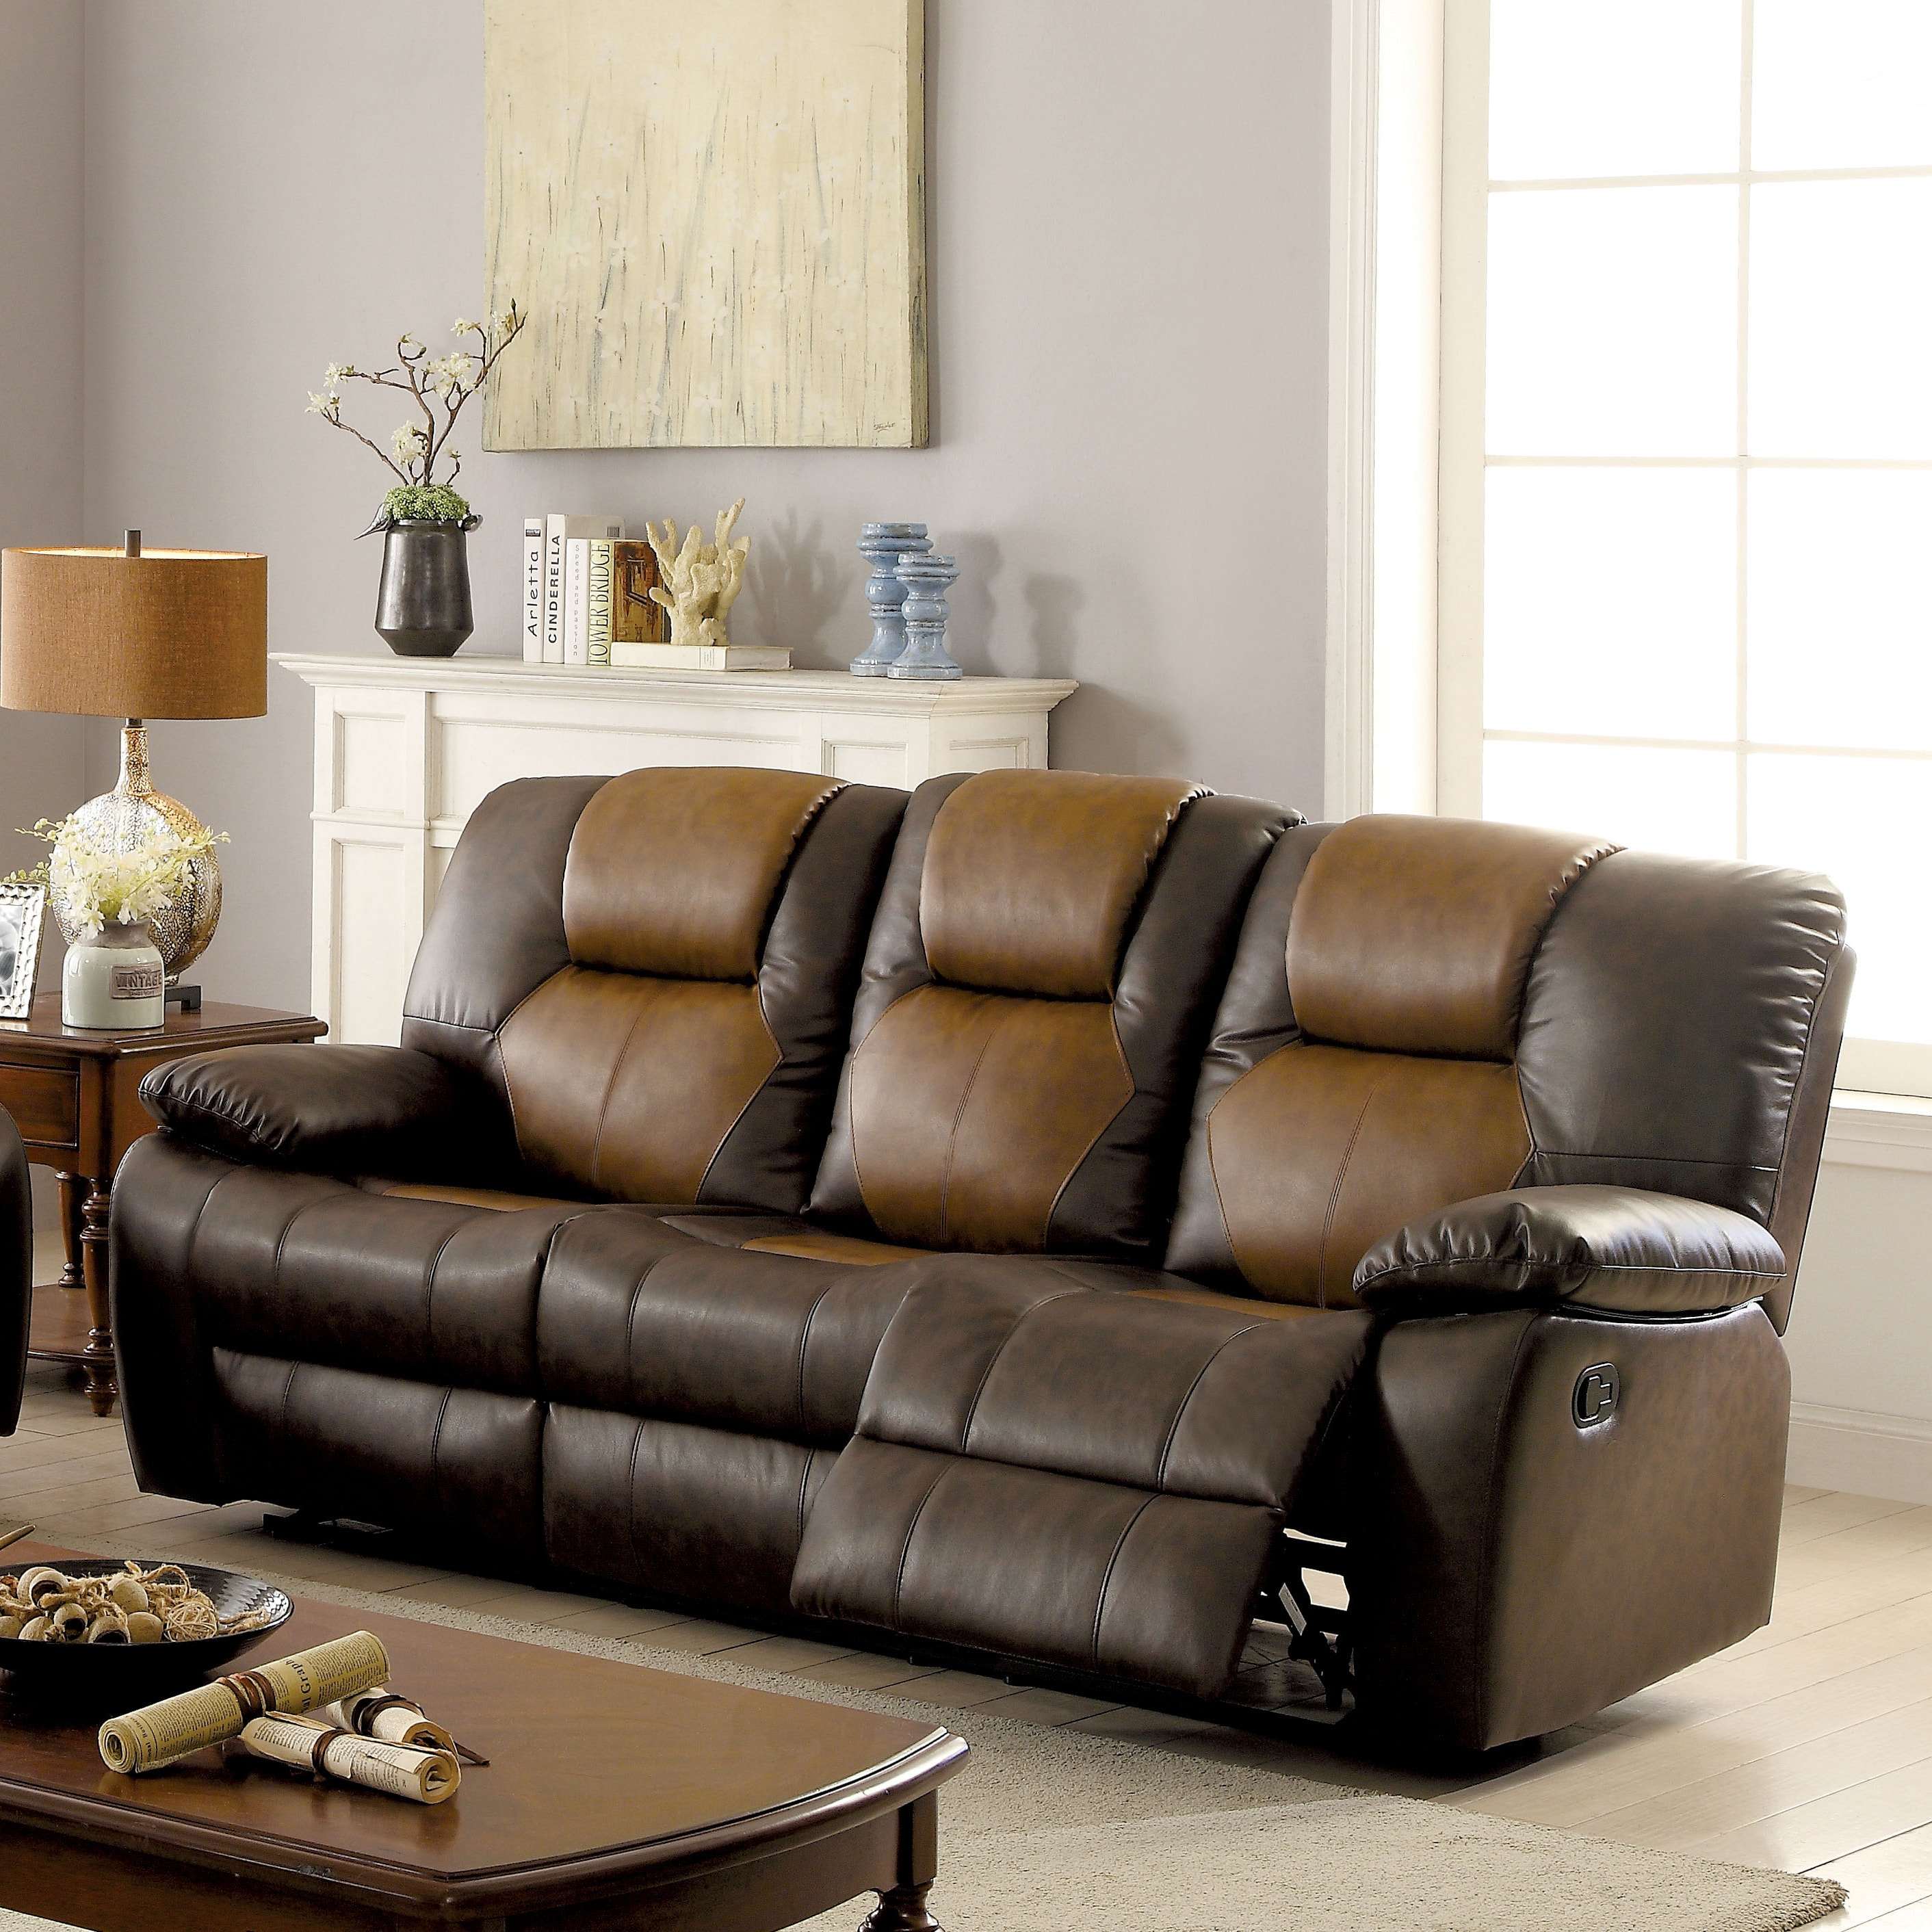 Furniture of America Alco Transitional Brown Glider Reclining Sofa